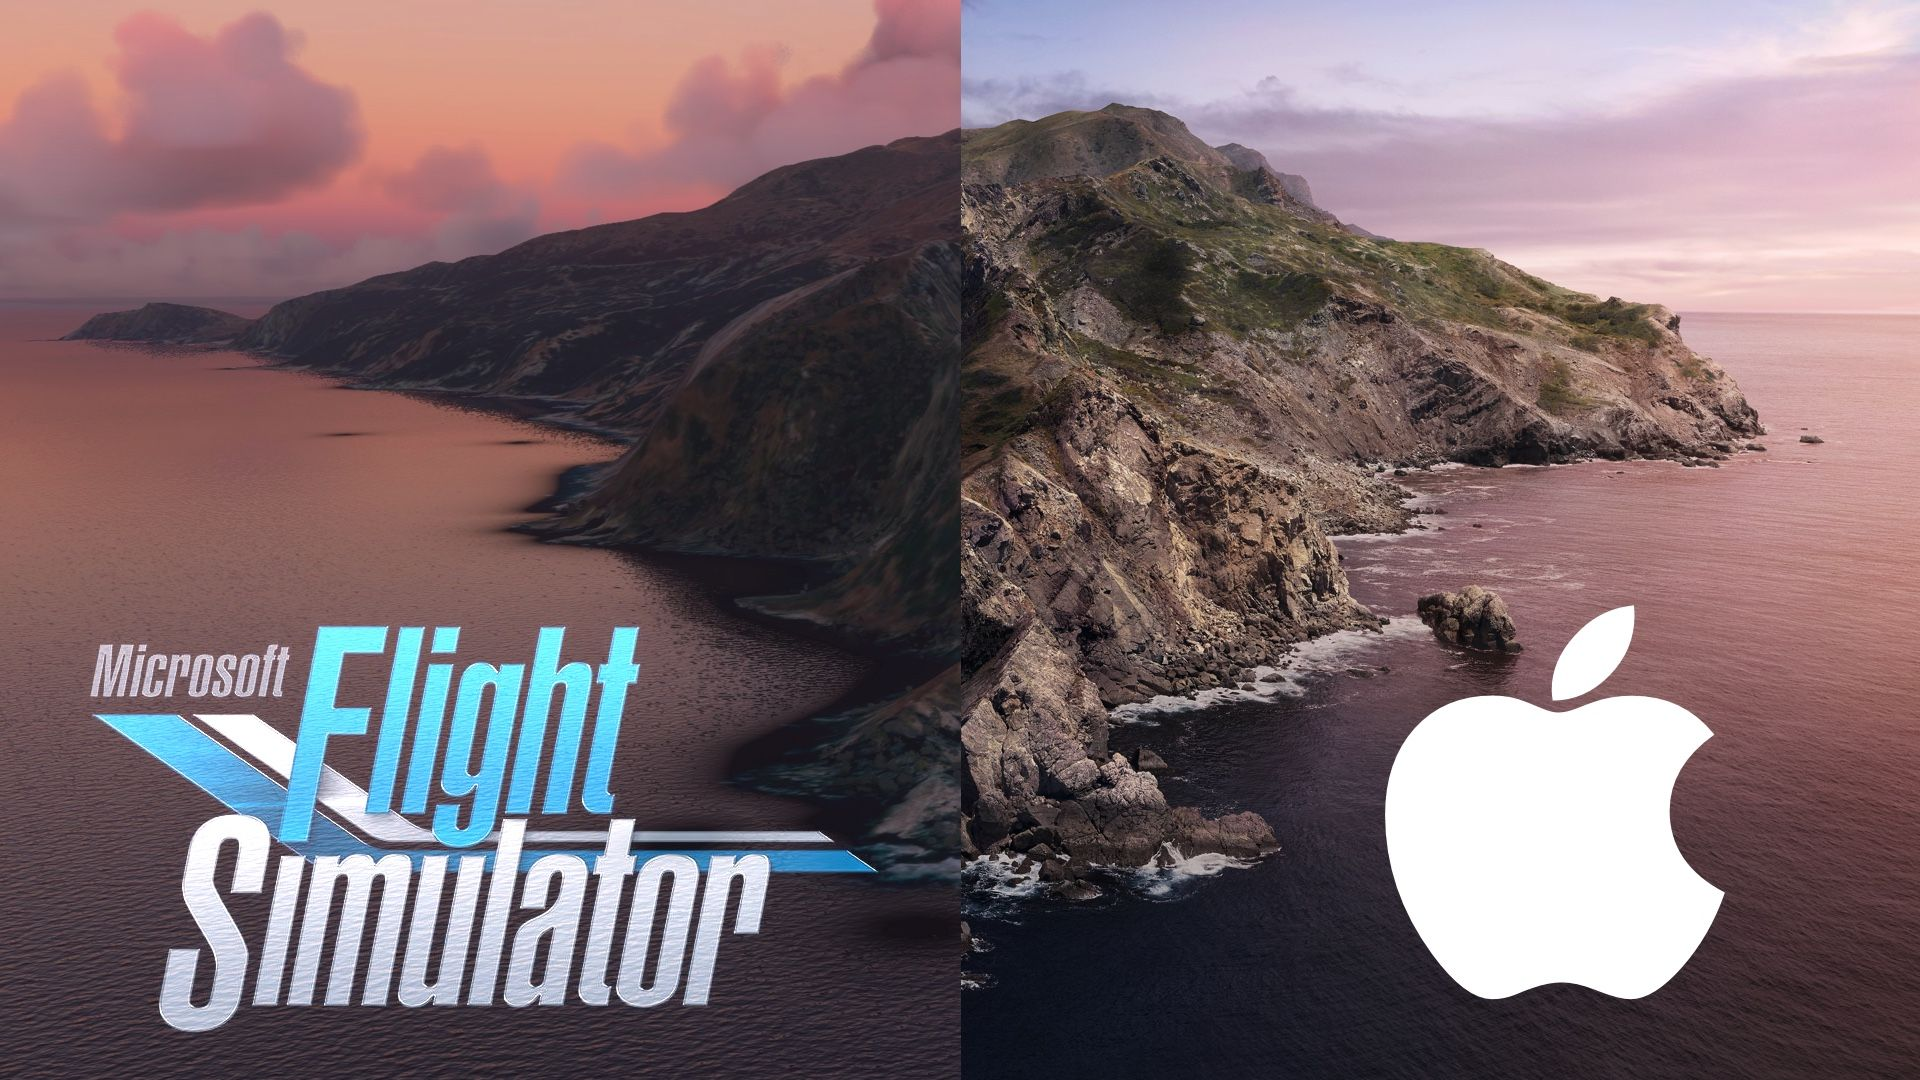 How I Made Those macOS Wallpapers in Flight Simulator